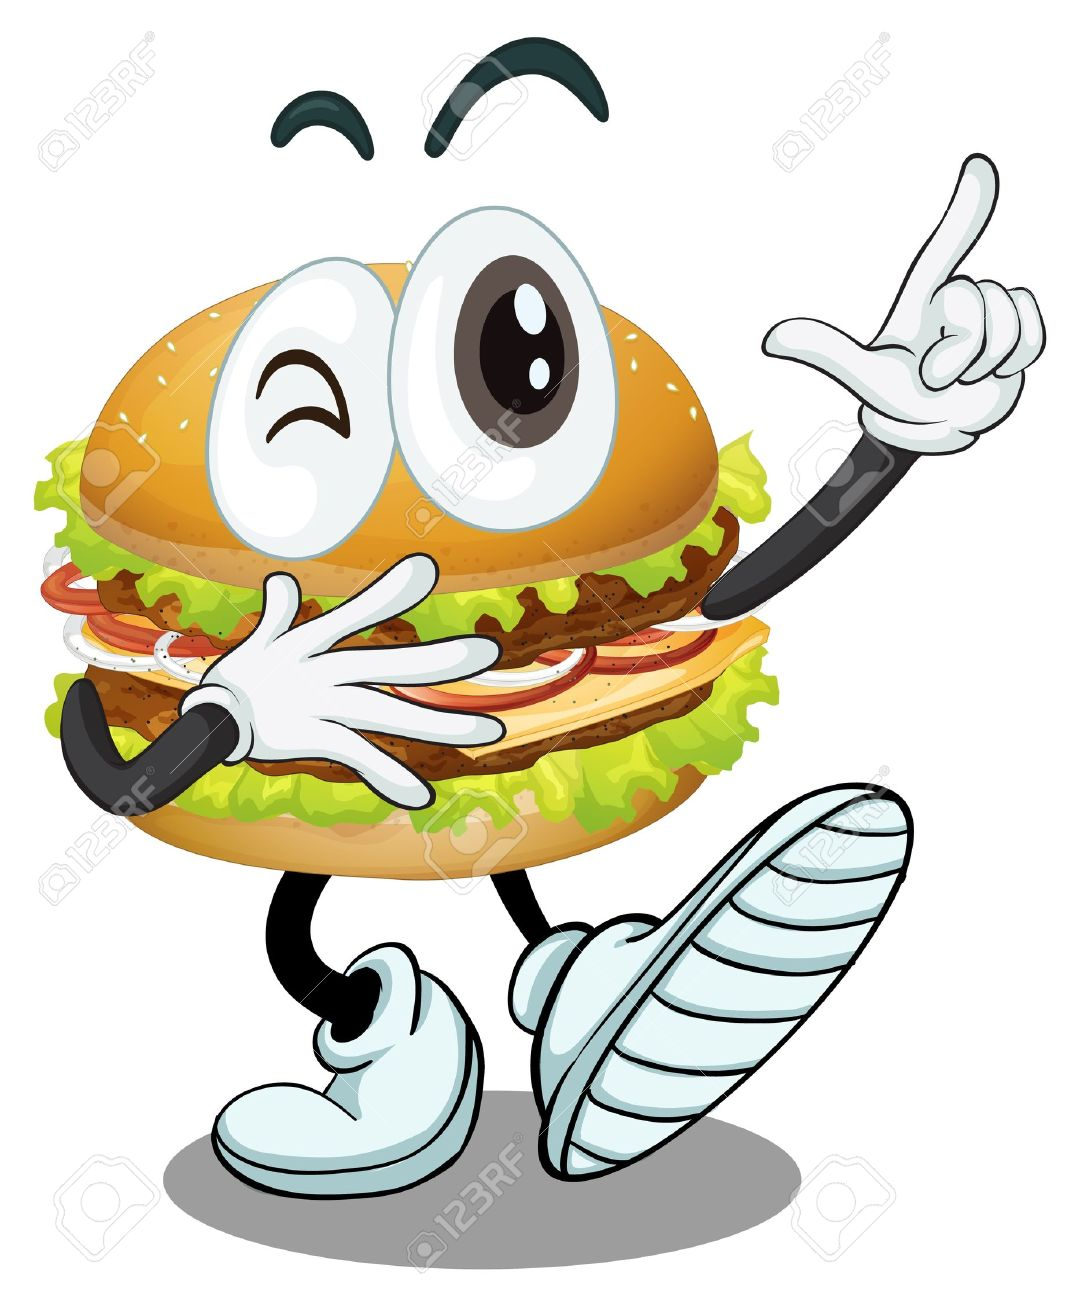 illustration of a burger on a white background Stock Vector - 16188253